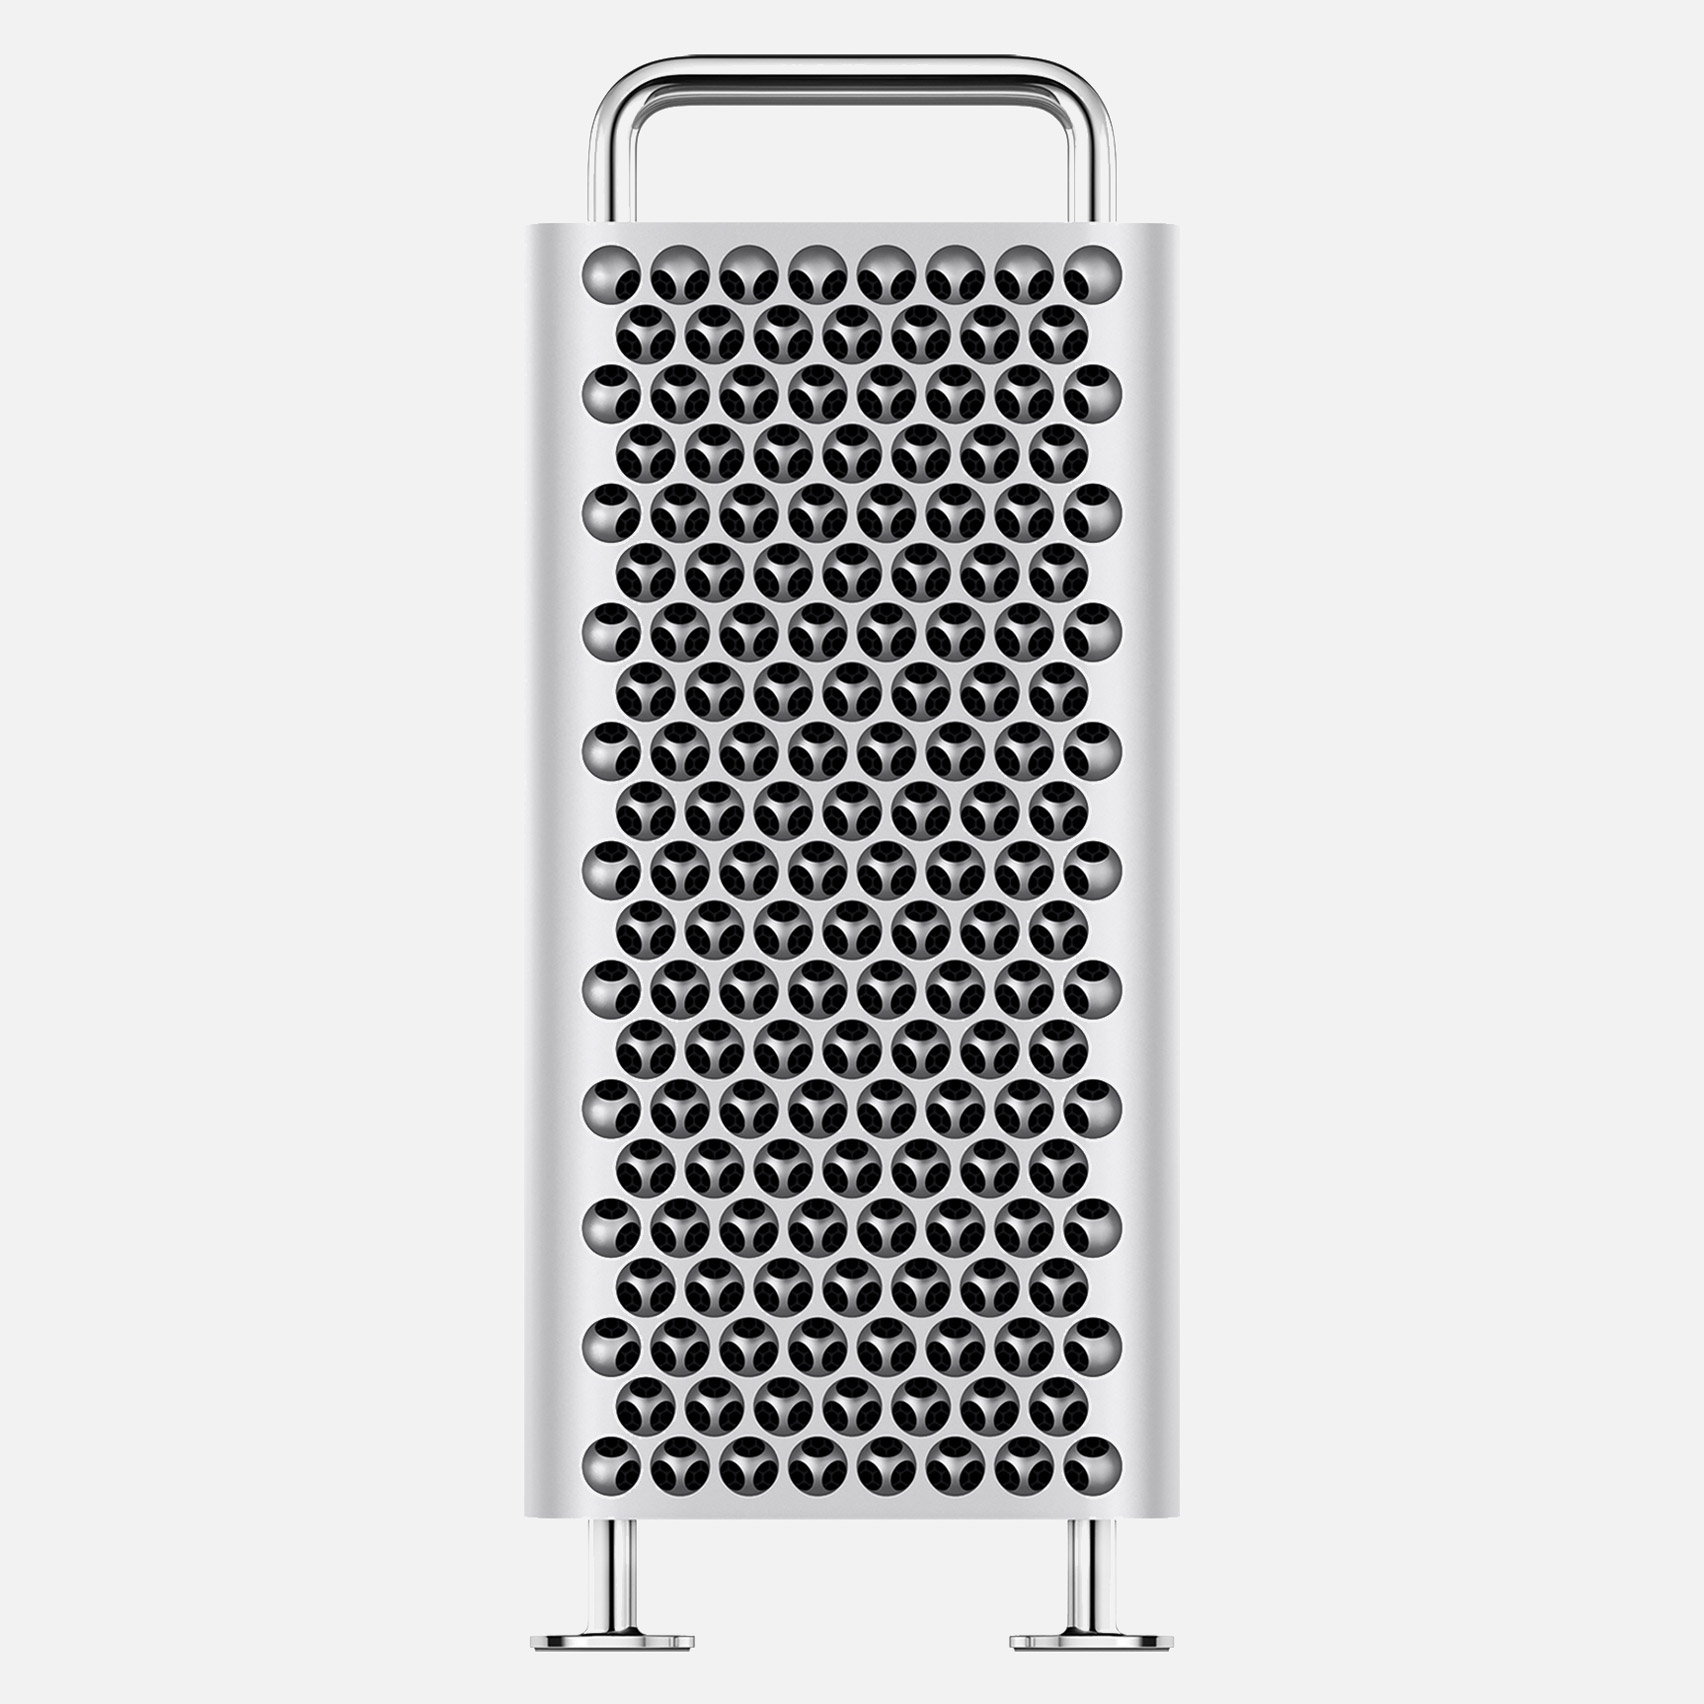 Apple-giu-su-don-gian-cho-mac-pro-2019-2